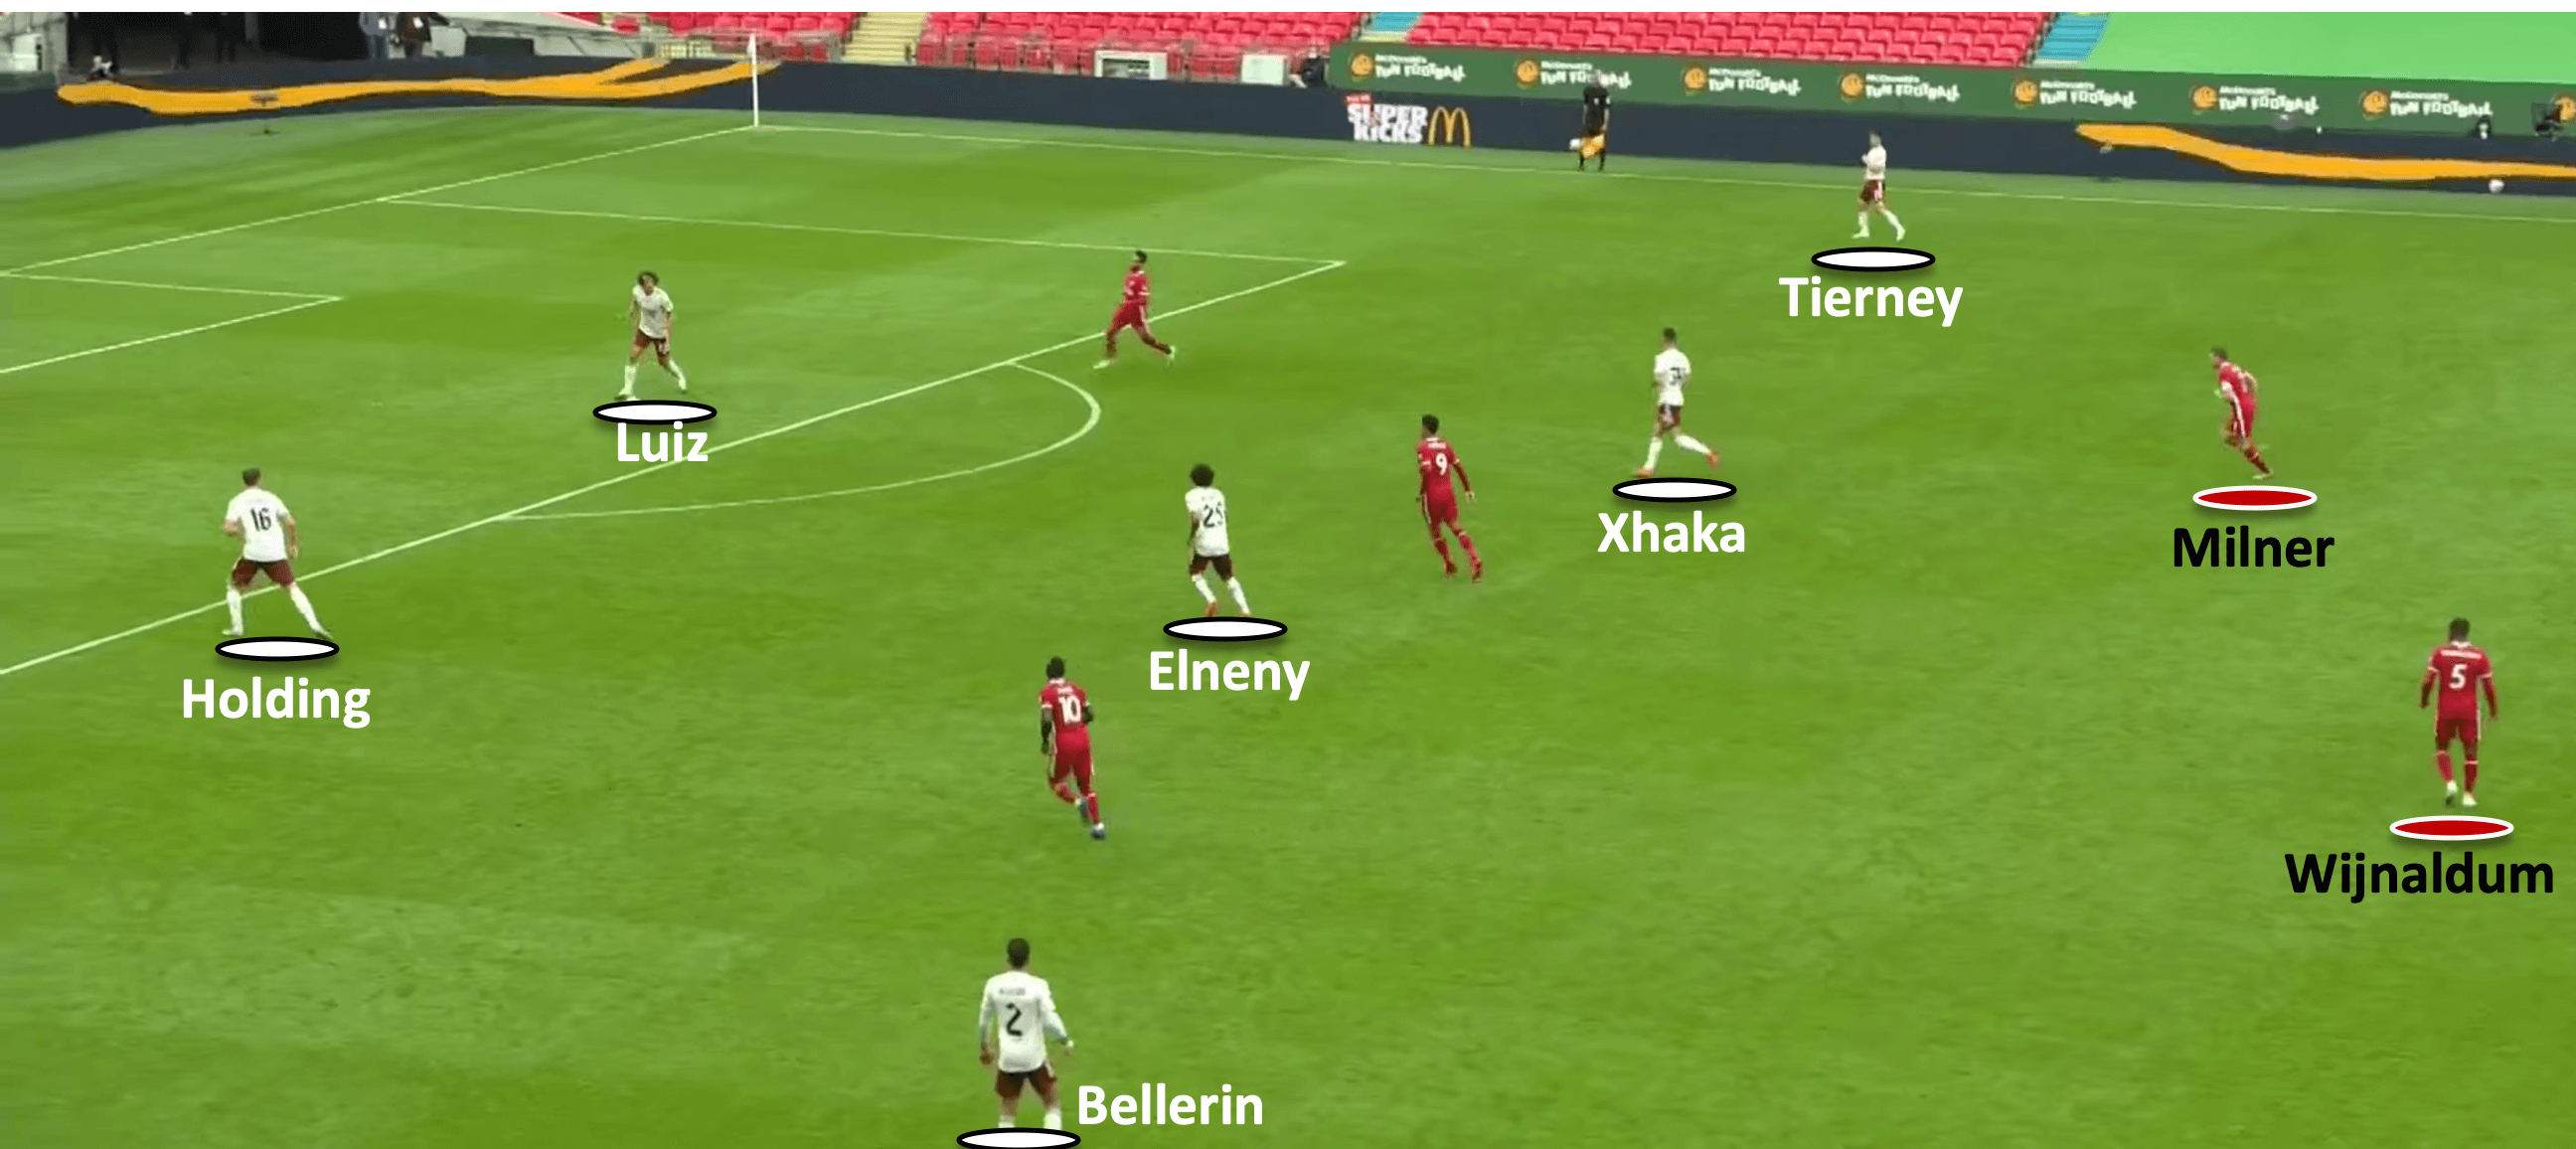 Community Shield 2020: Arsenal vs Liverpool - tactical analysis